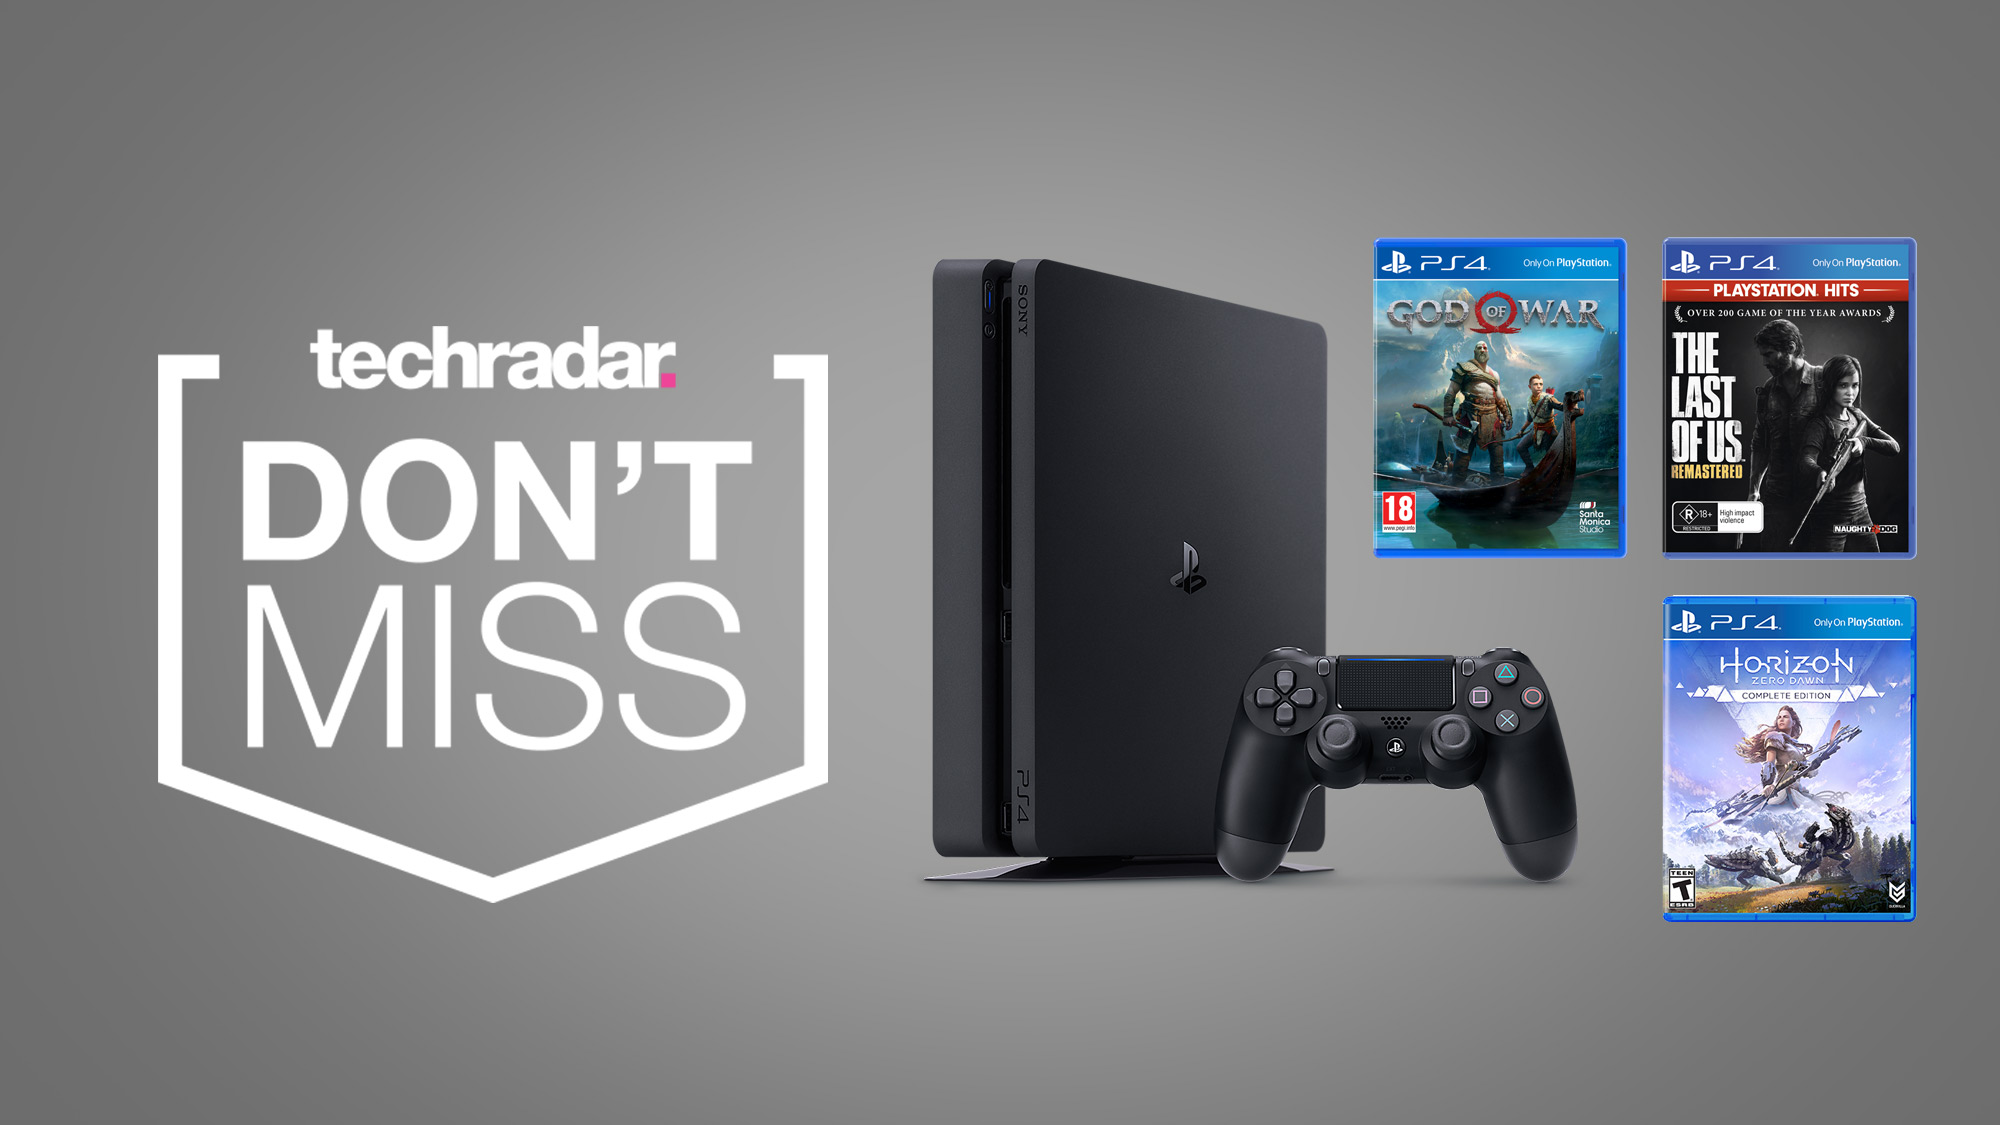 This cheap PS4 bundle deal includes three of PlayStation's biggest hits for free